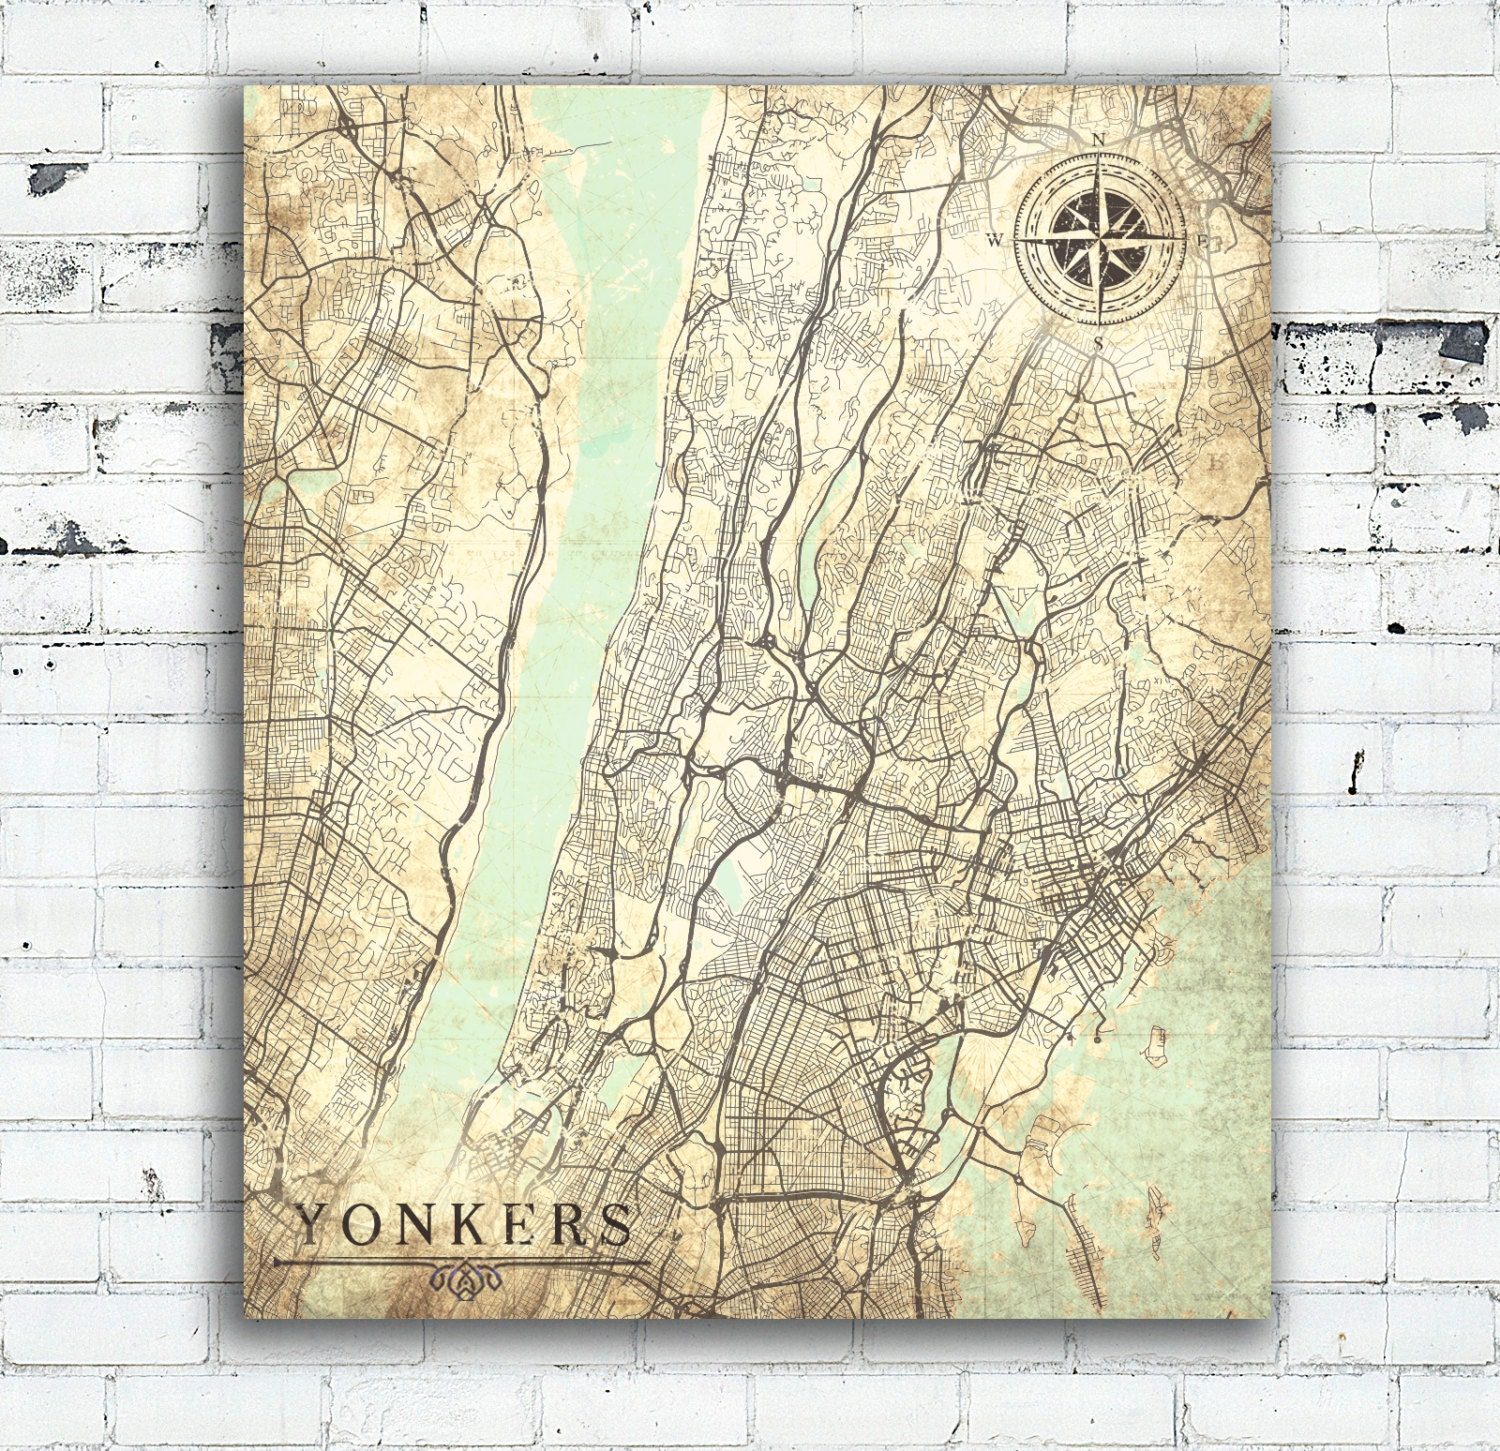 YONKERS NY Canvas Print Yonkers City NYC New York City Map Yonkers on